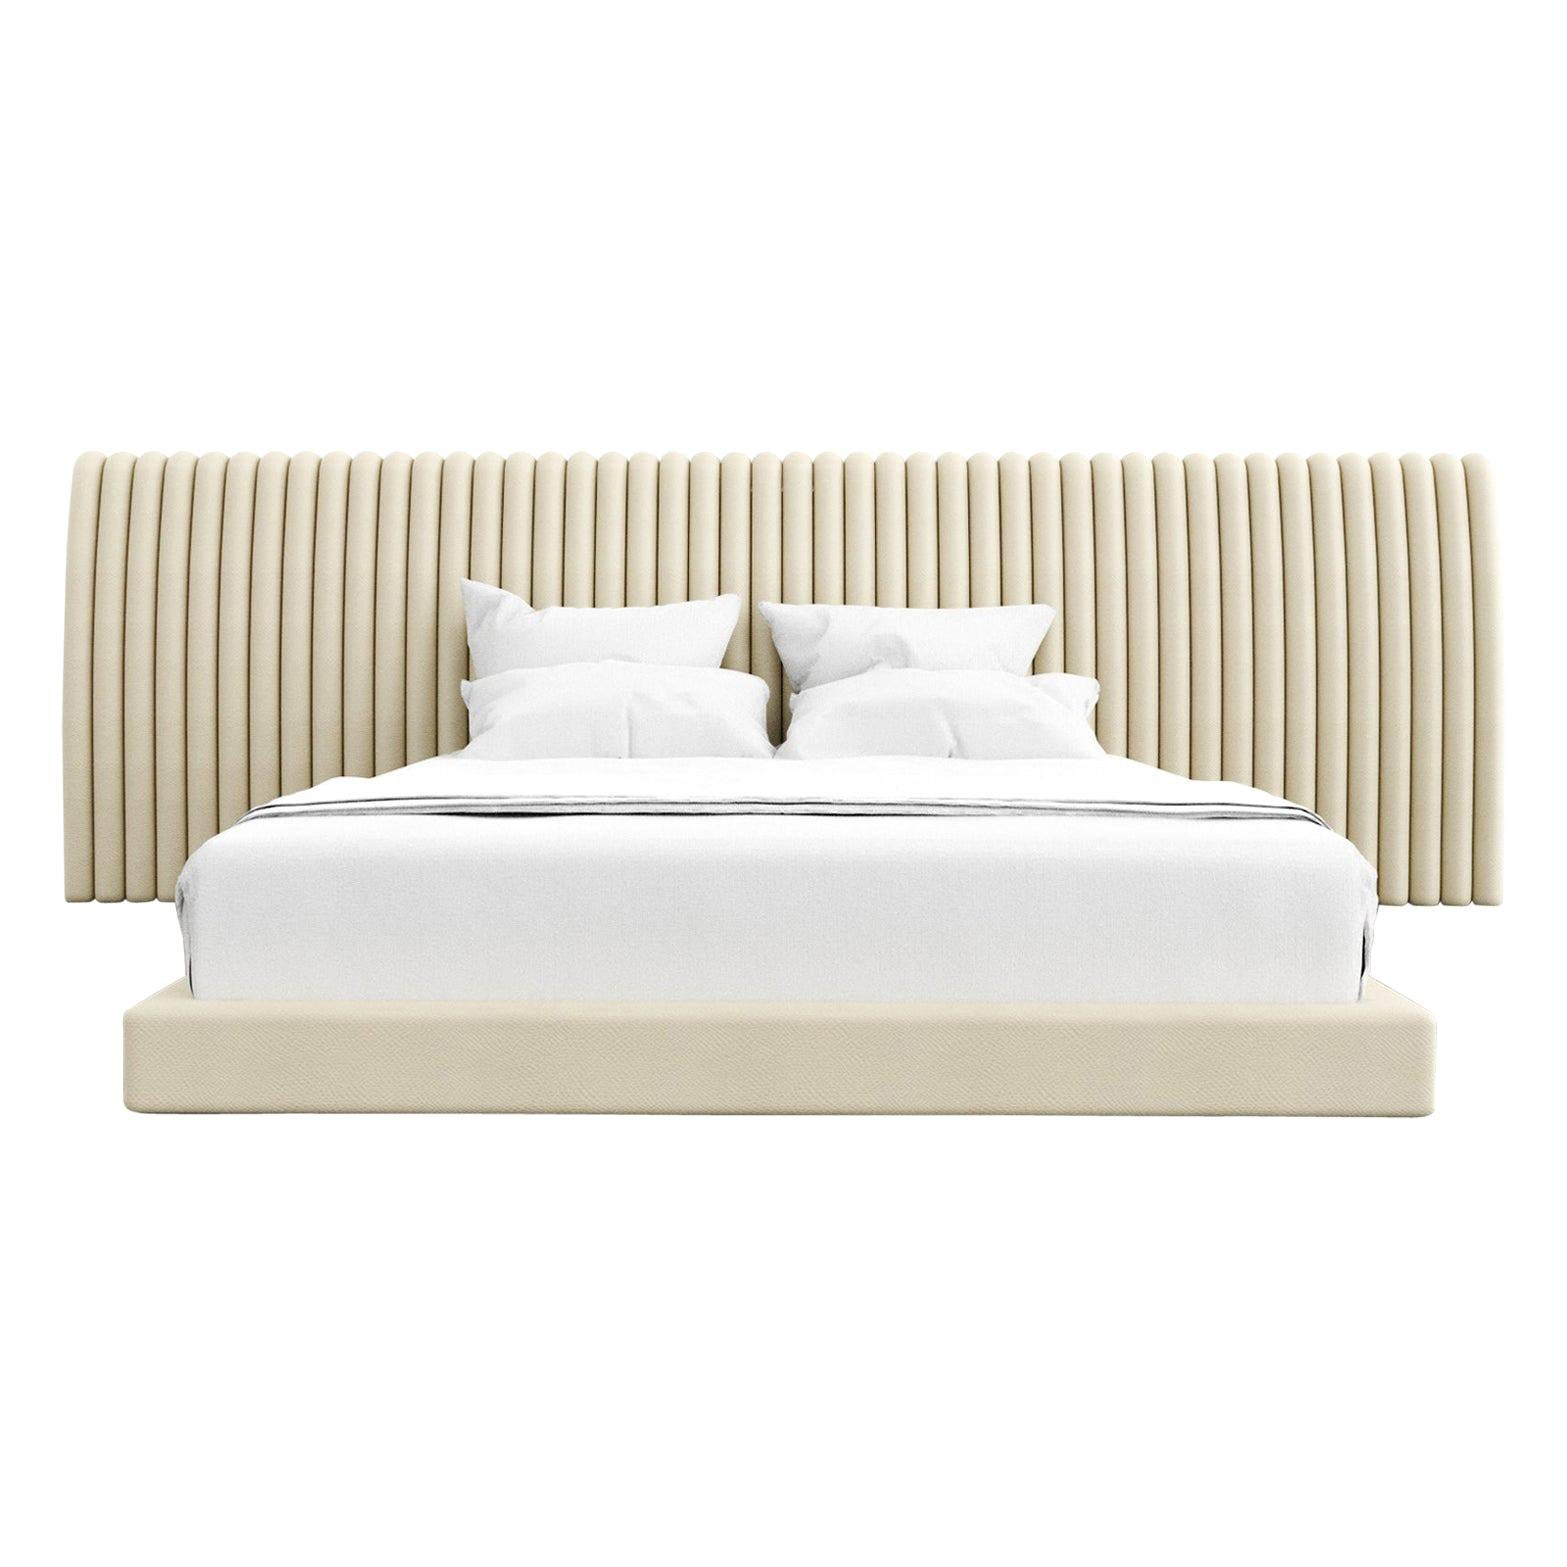 Channel Bed, Modern Bed with Kimodo Faux Leather Frame and Headboard